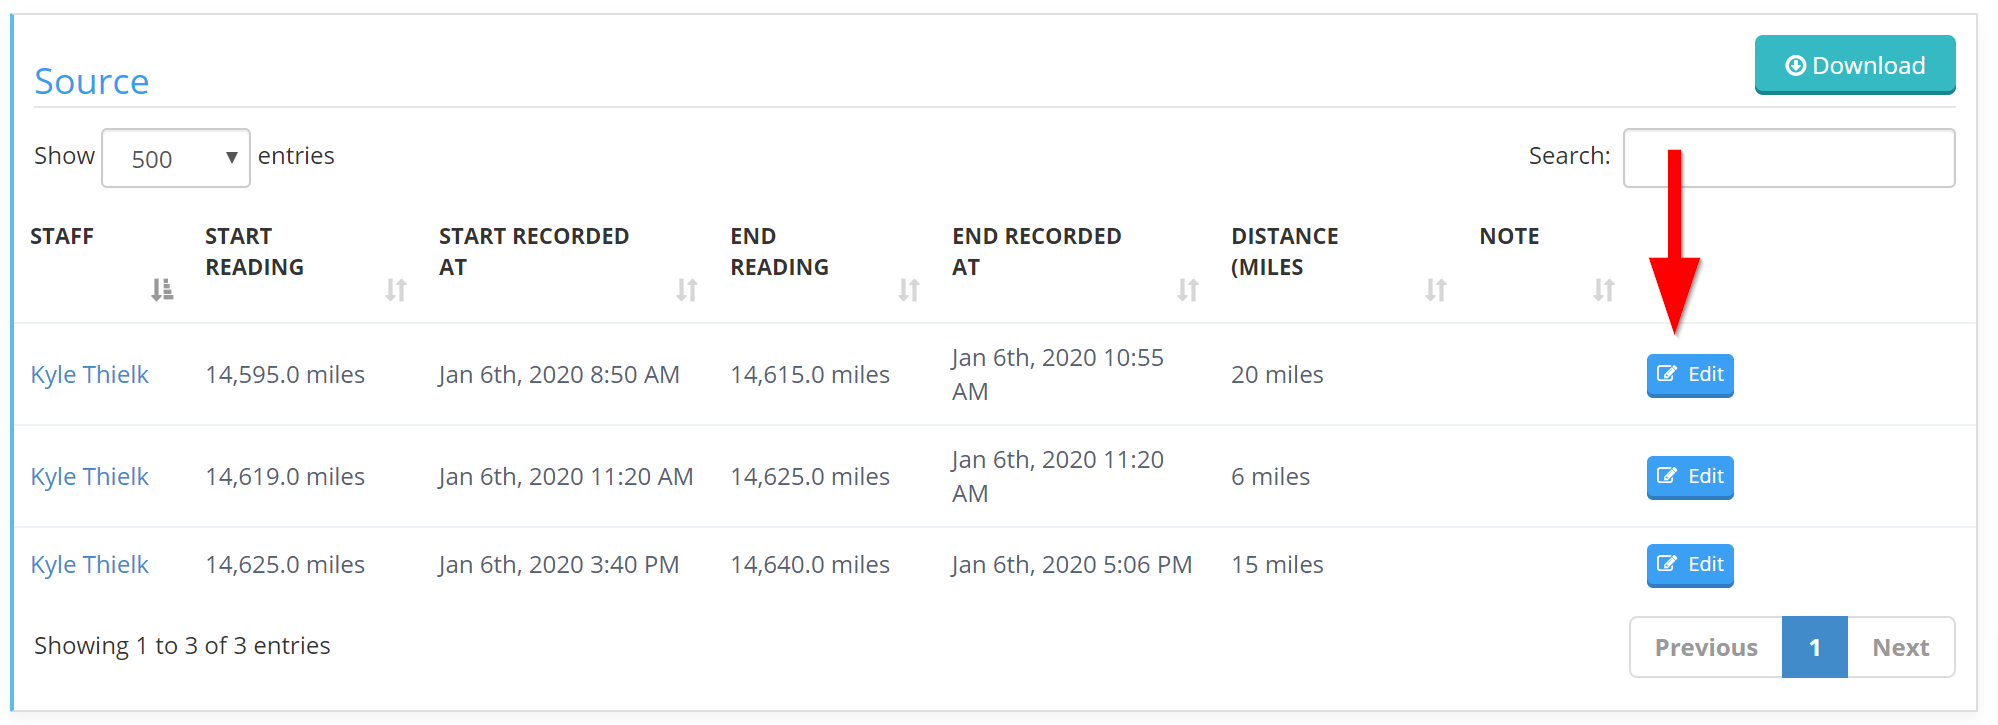 Time and Mileage Tracking - Select Edit to edit the report data